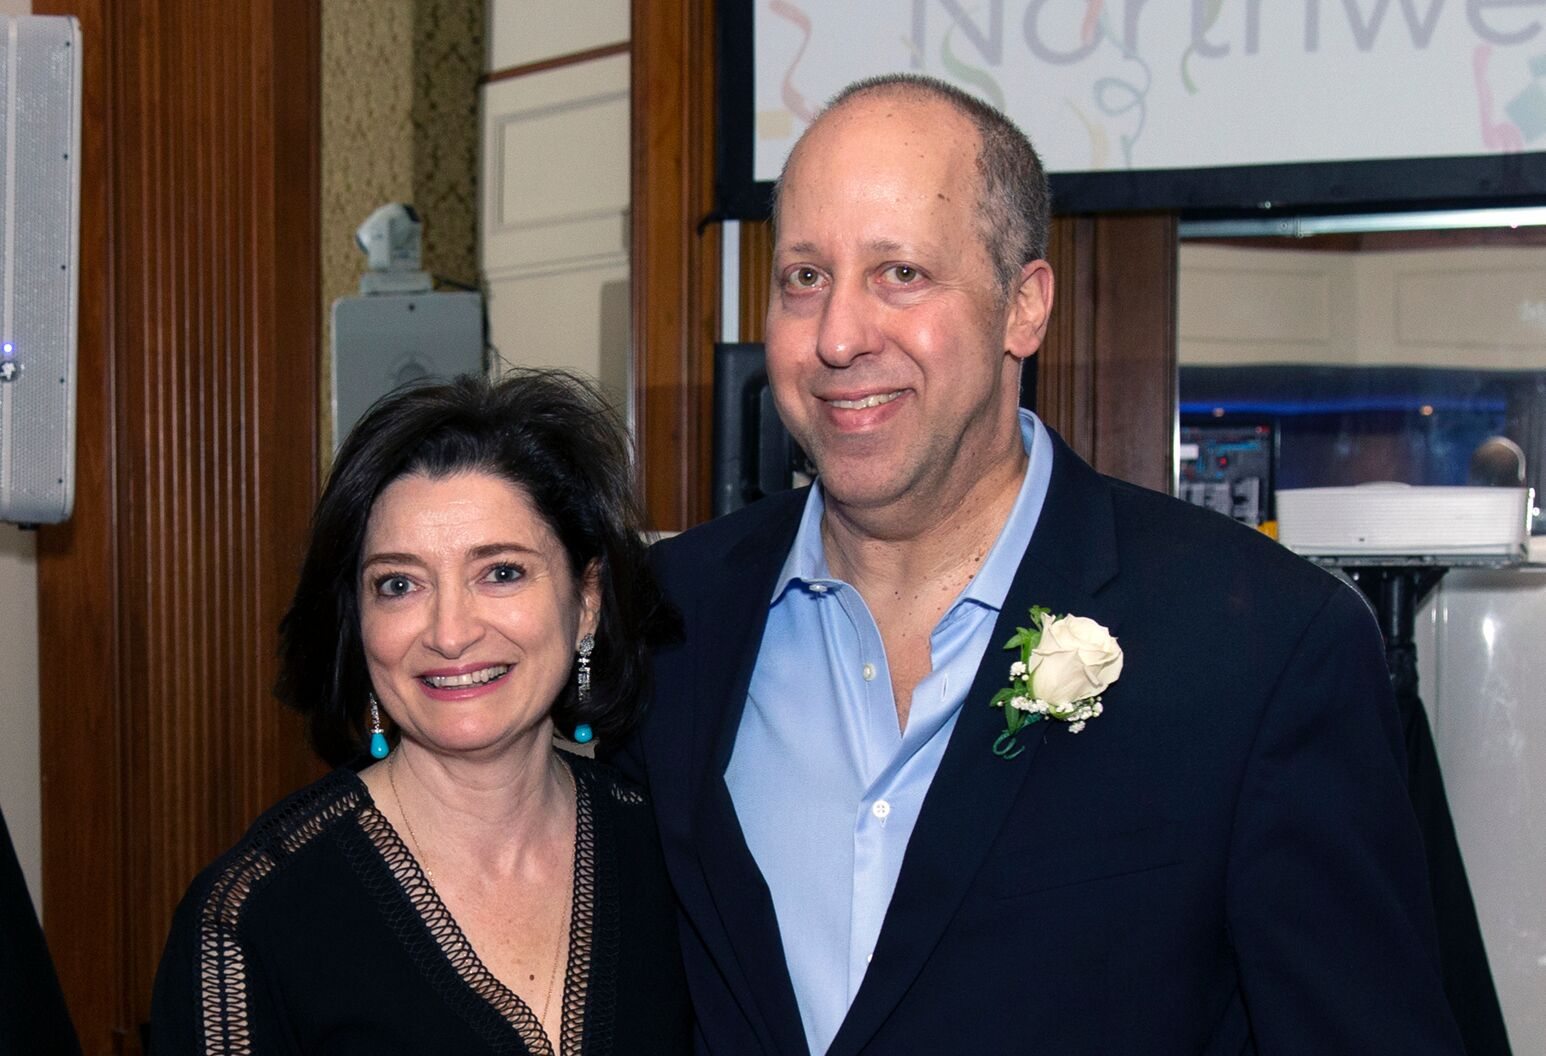 Older woman and man in formal attire standing together arm-in-arm.